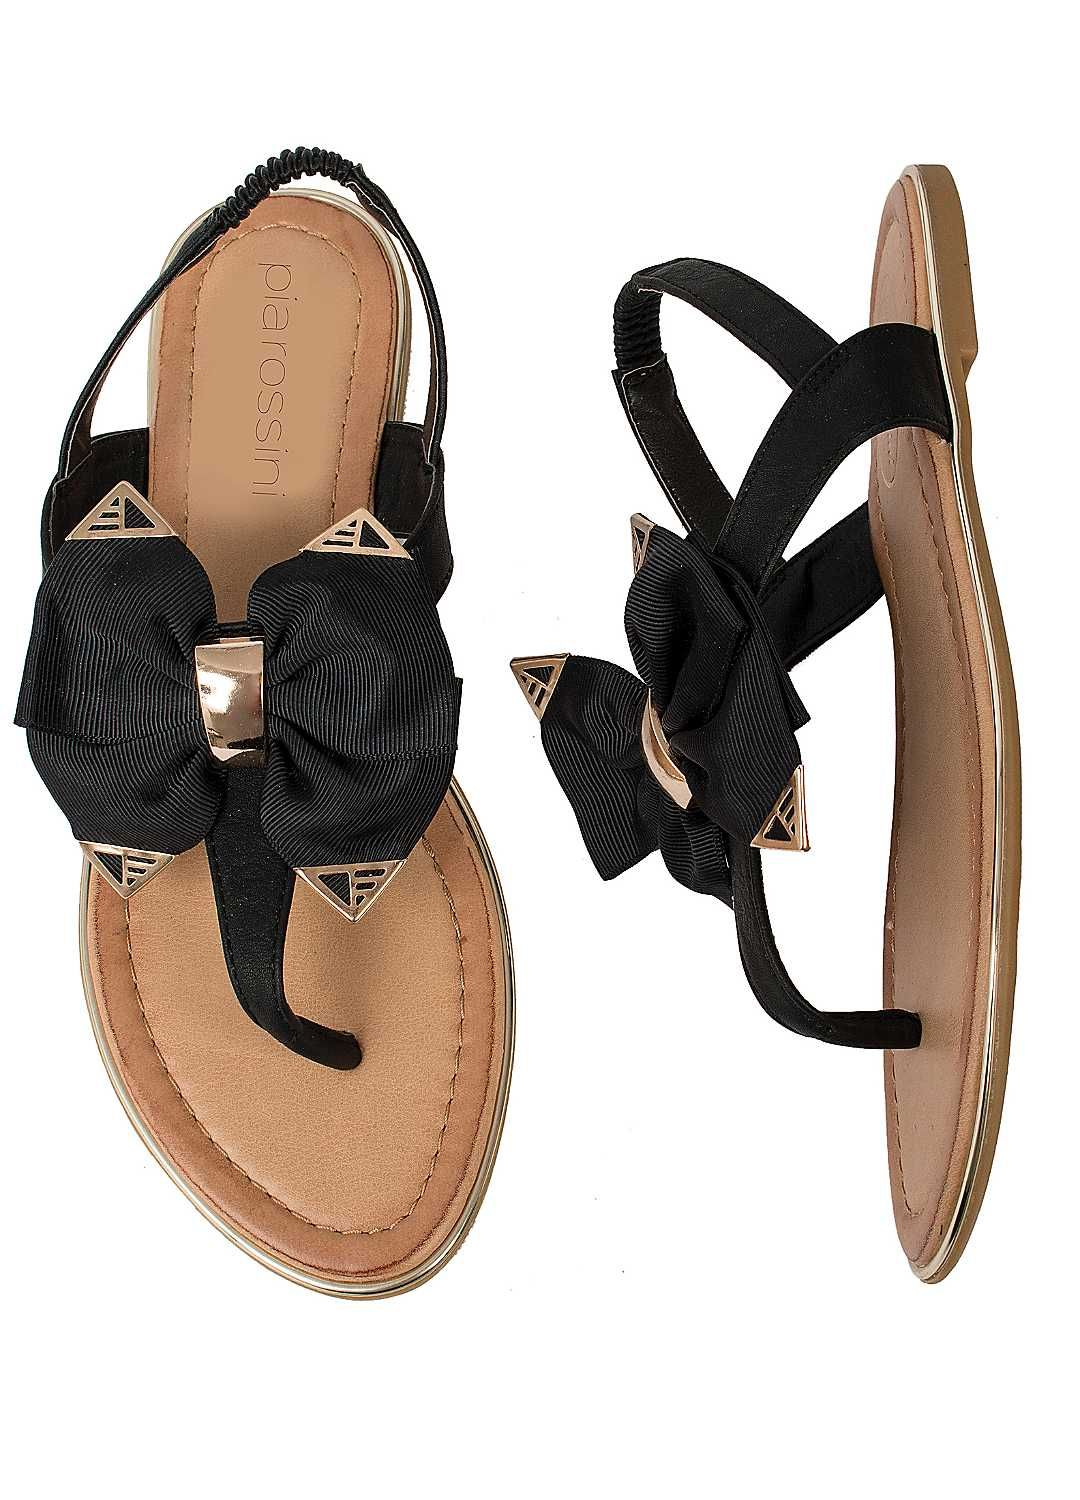 a17bf6d149c3 Pia Rossini Bow Top Sandals